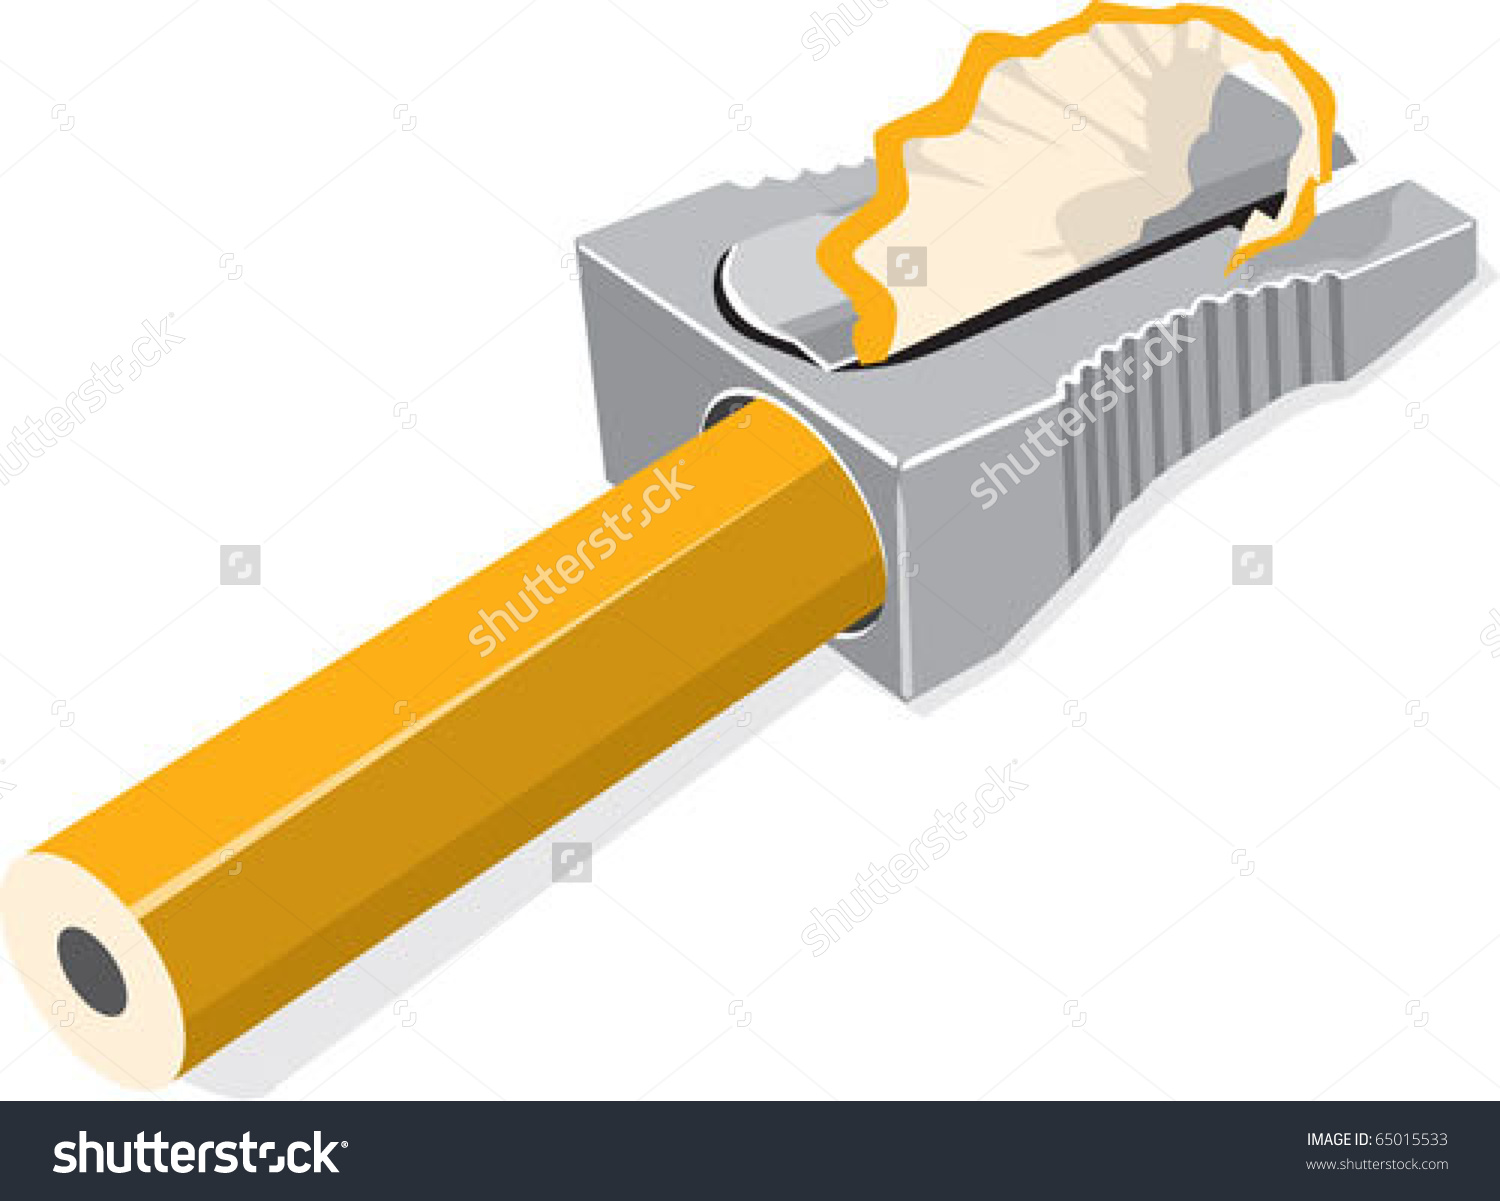 Sharpened pencil clip art.